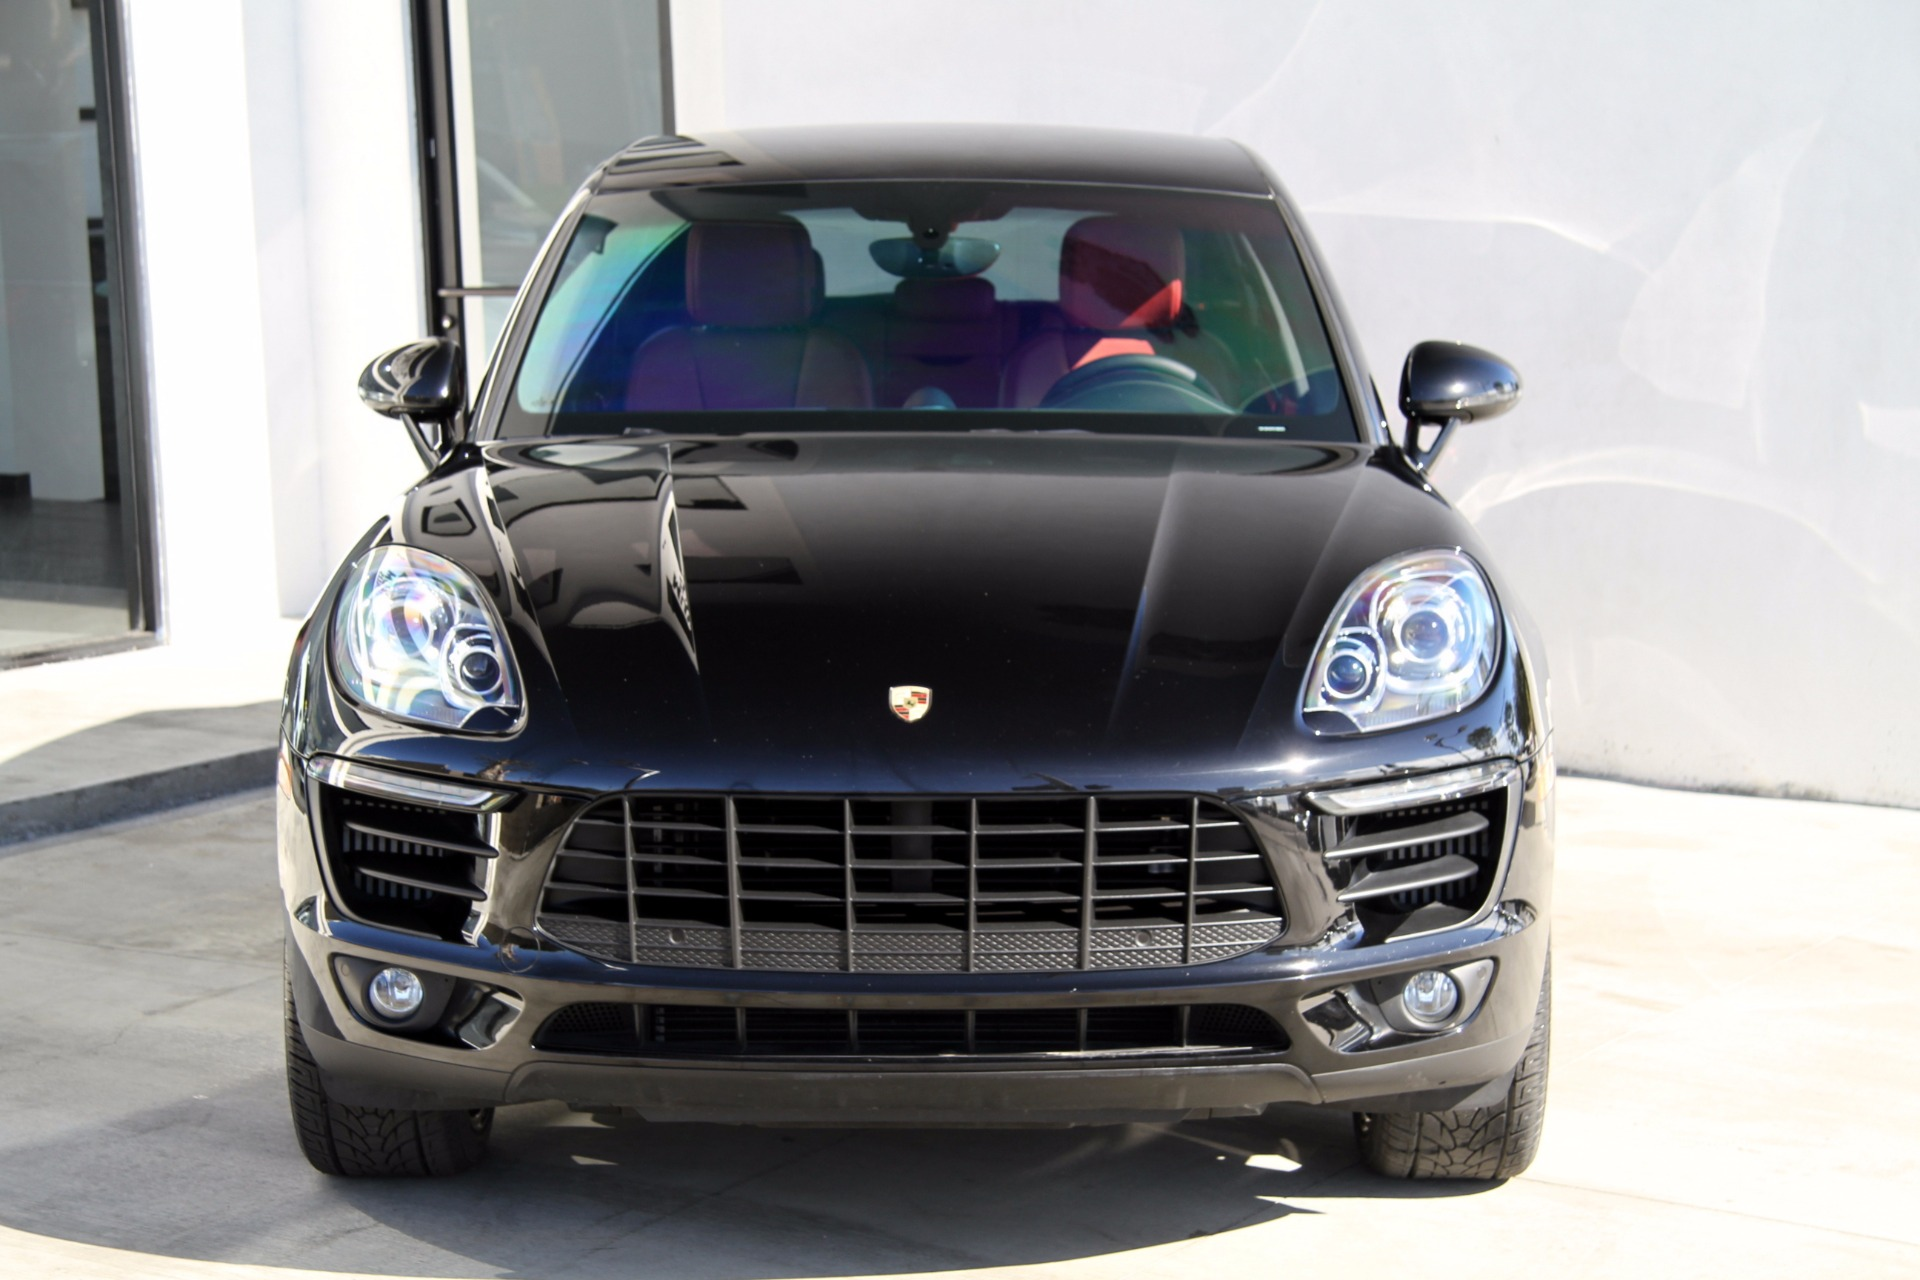 Free Vehicle History Report By Vin >> 2016 Porsche Macan S Stock # 6031 for sale near Redondo ...